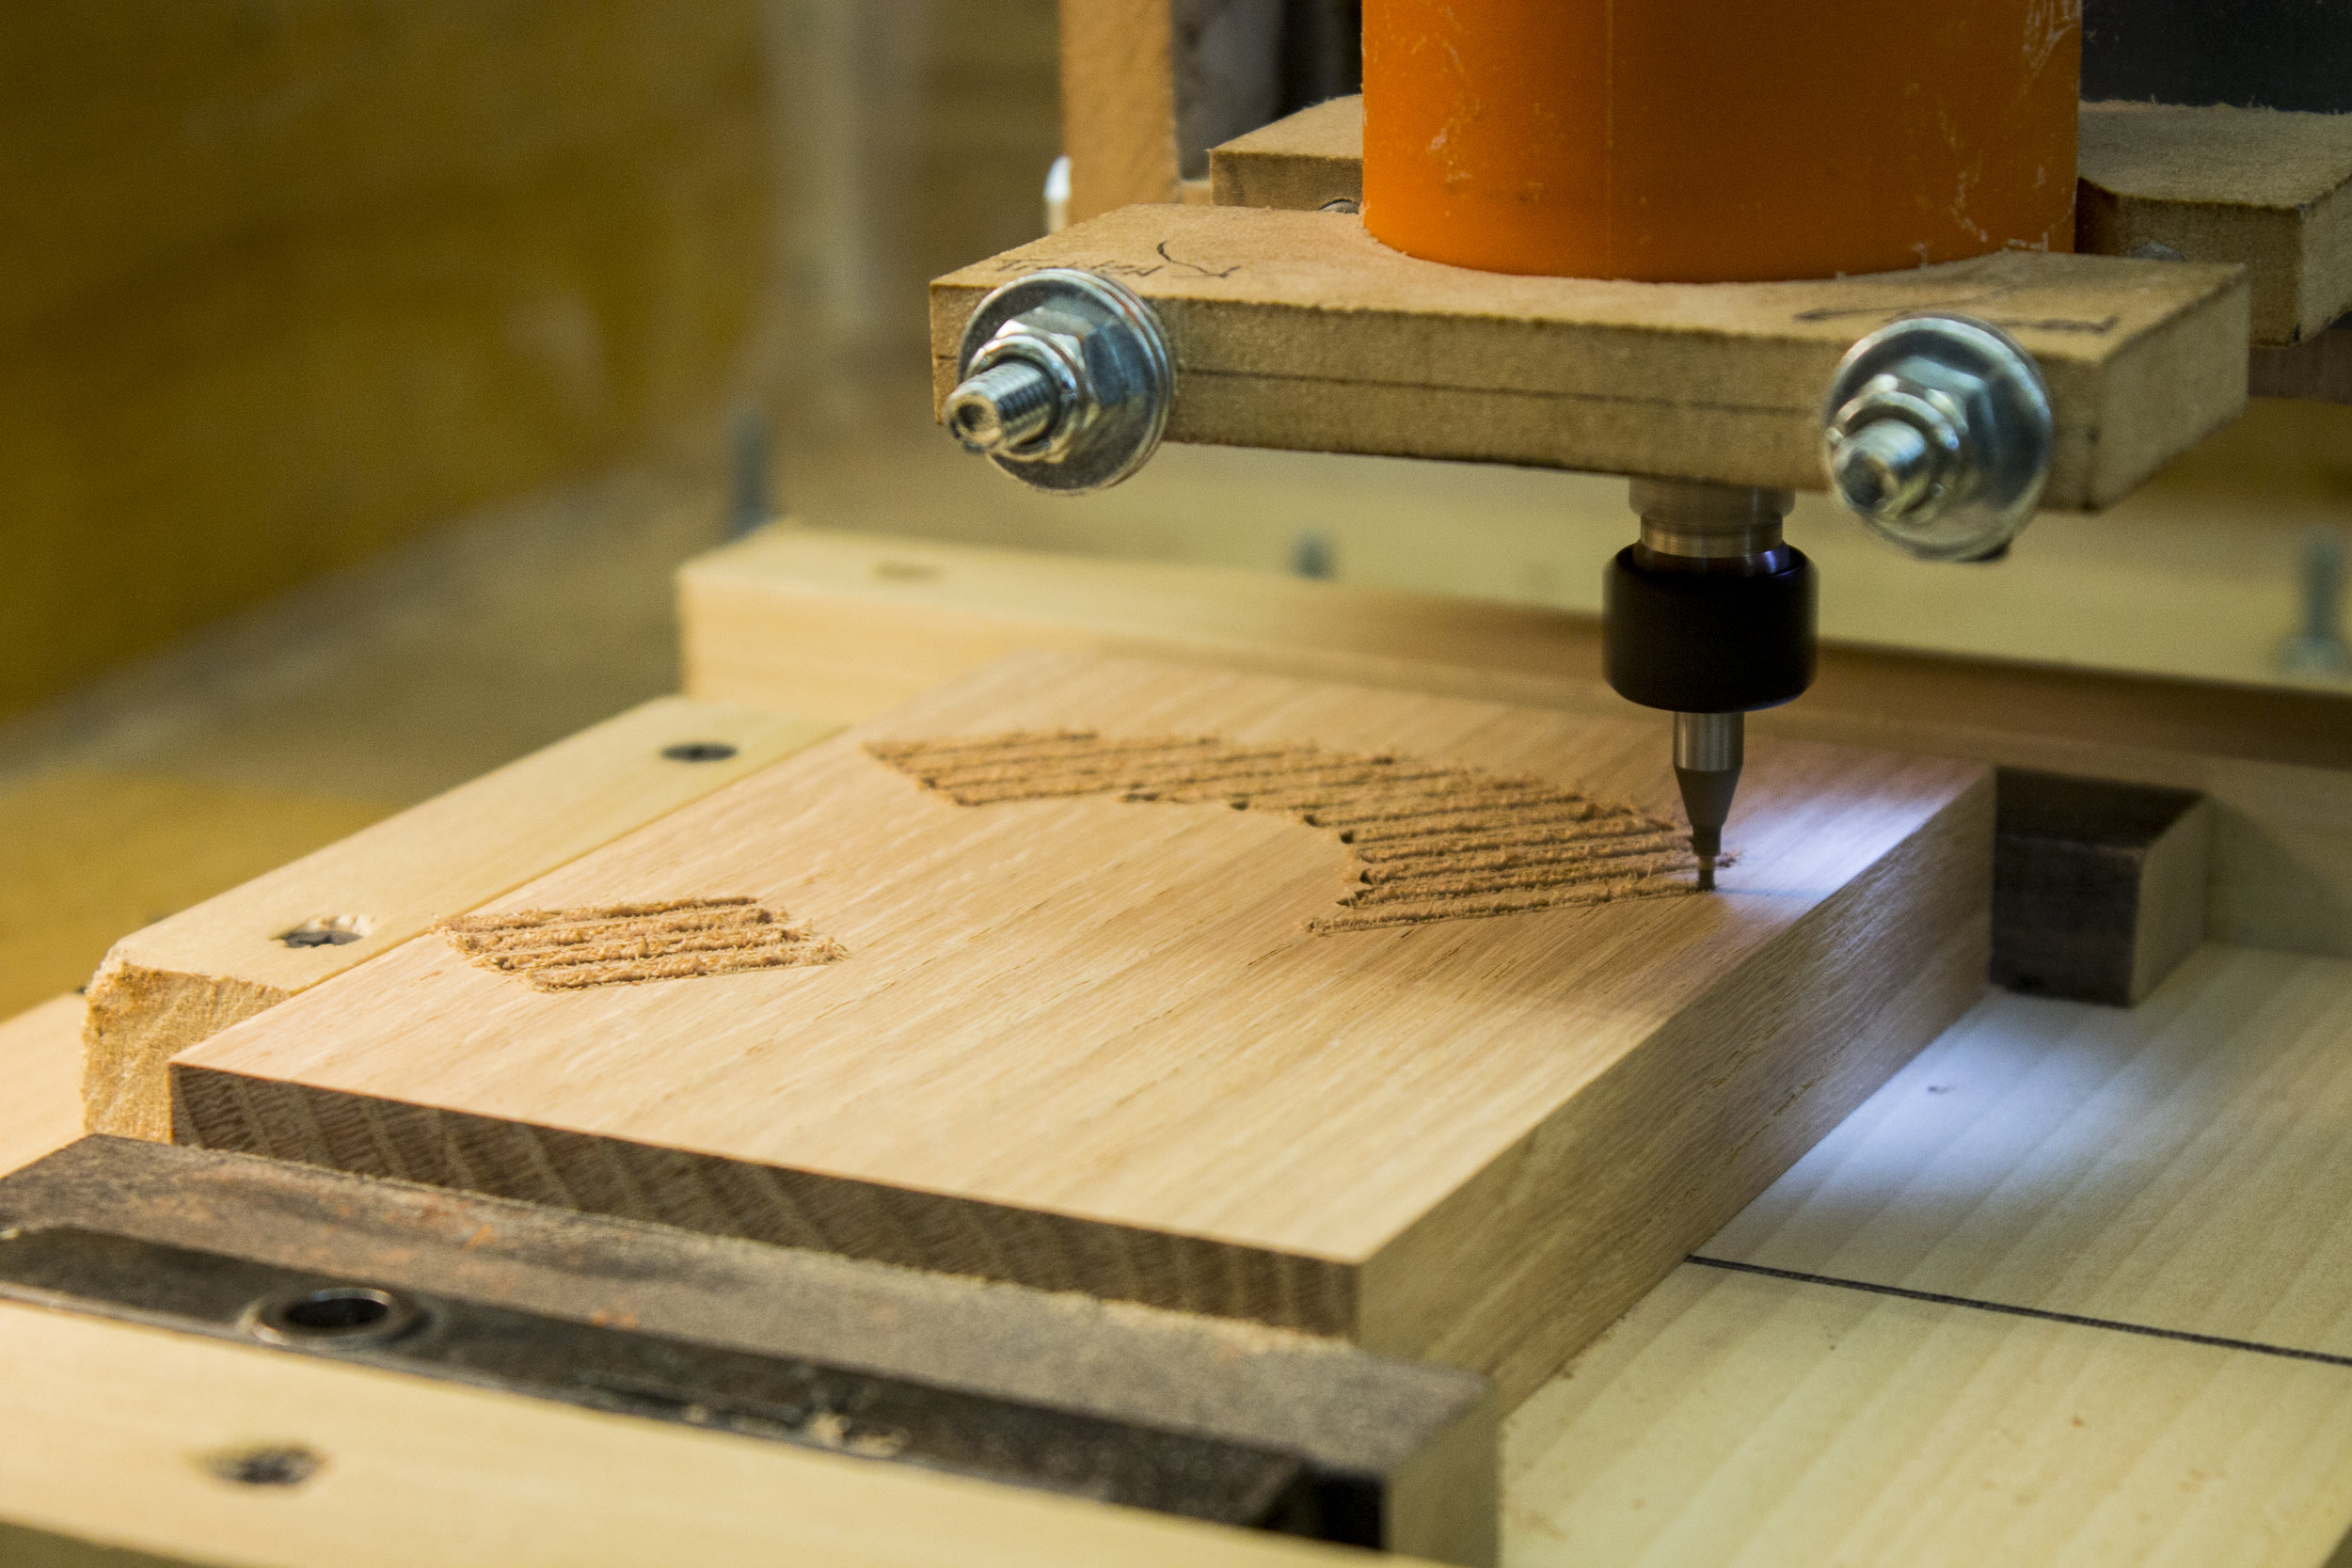 CNC Router cuts wood in a Bay Area FabLab, installed by IDEA BUILDER Labs